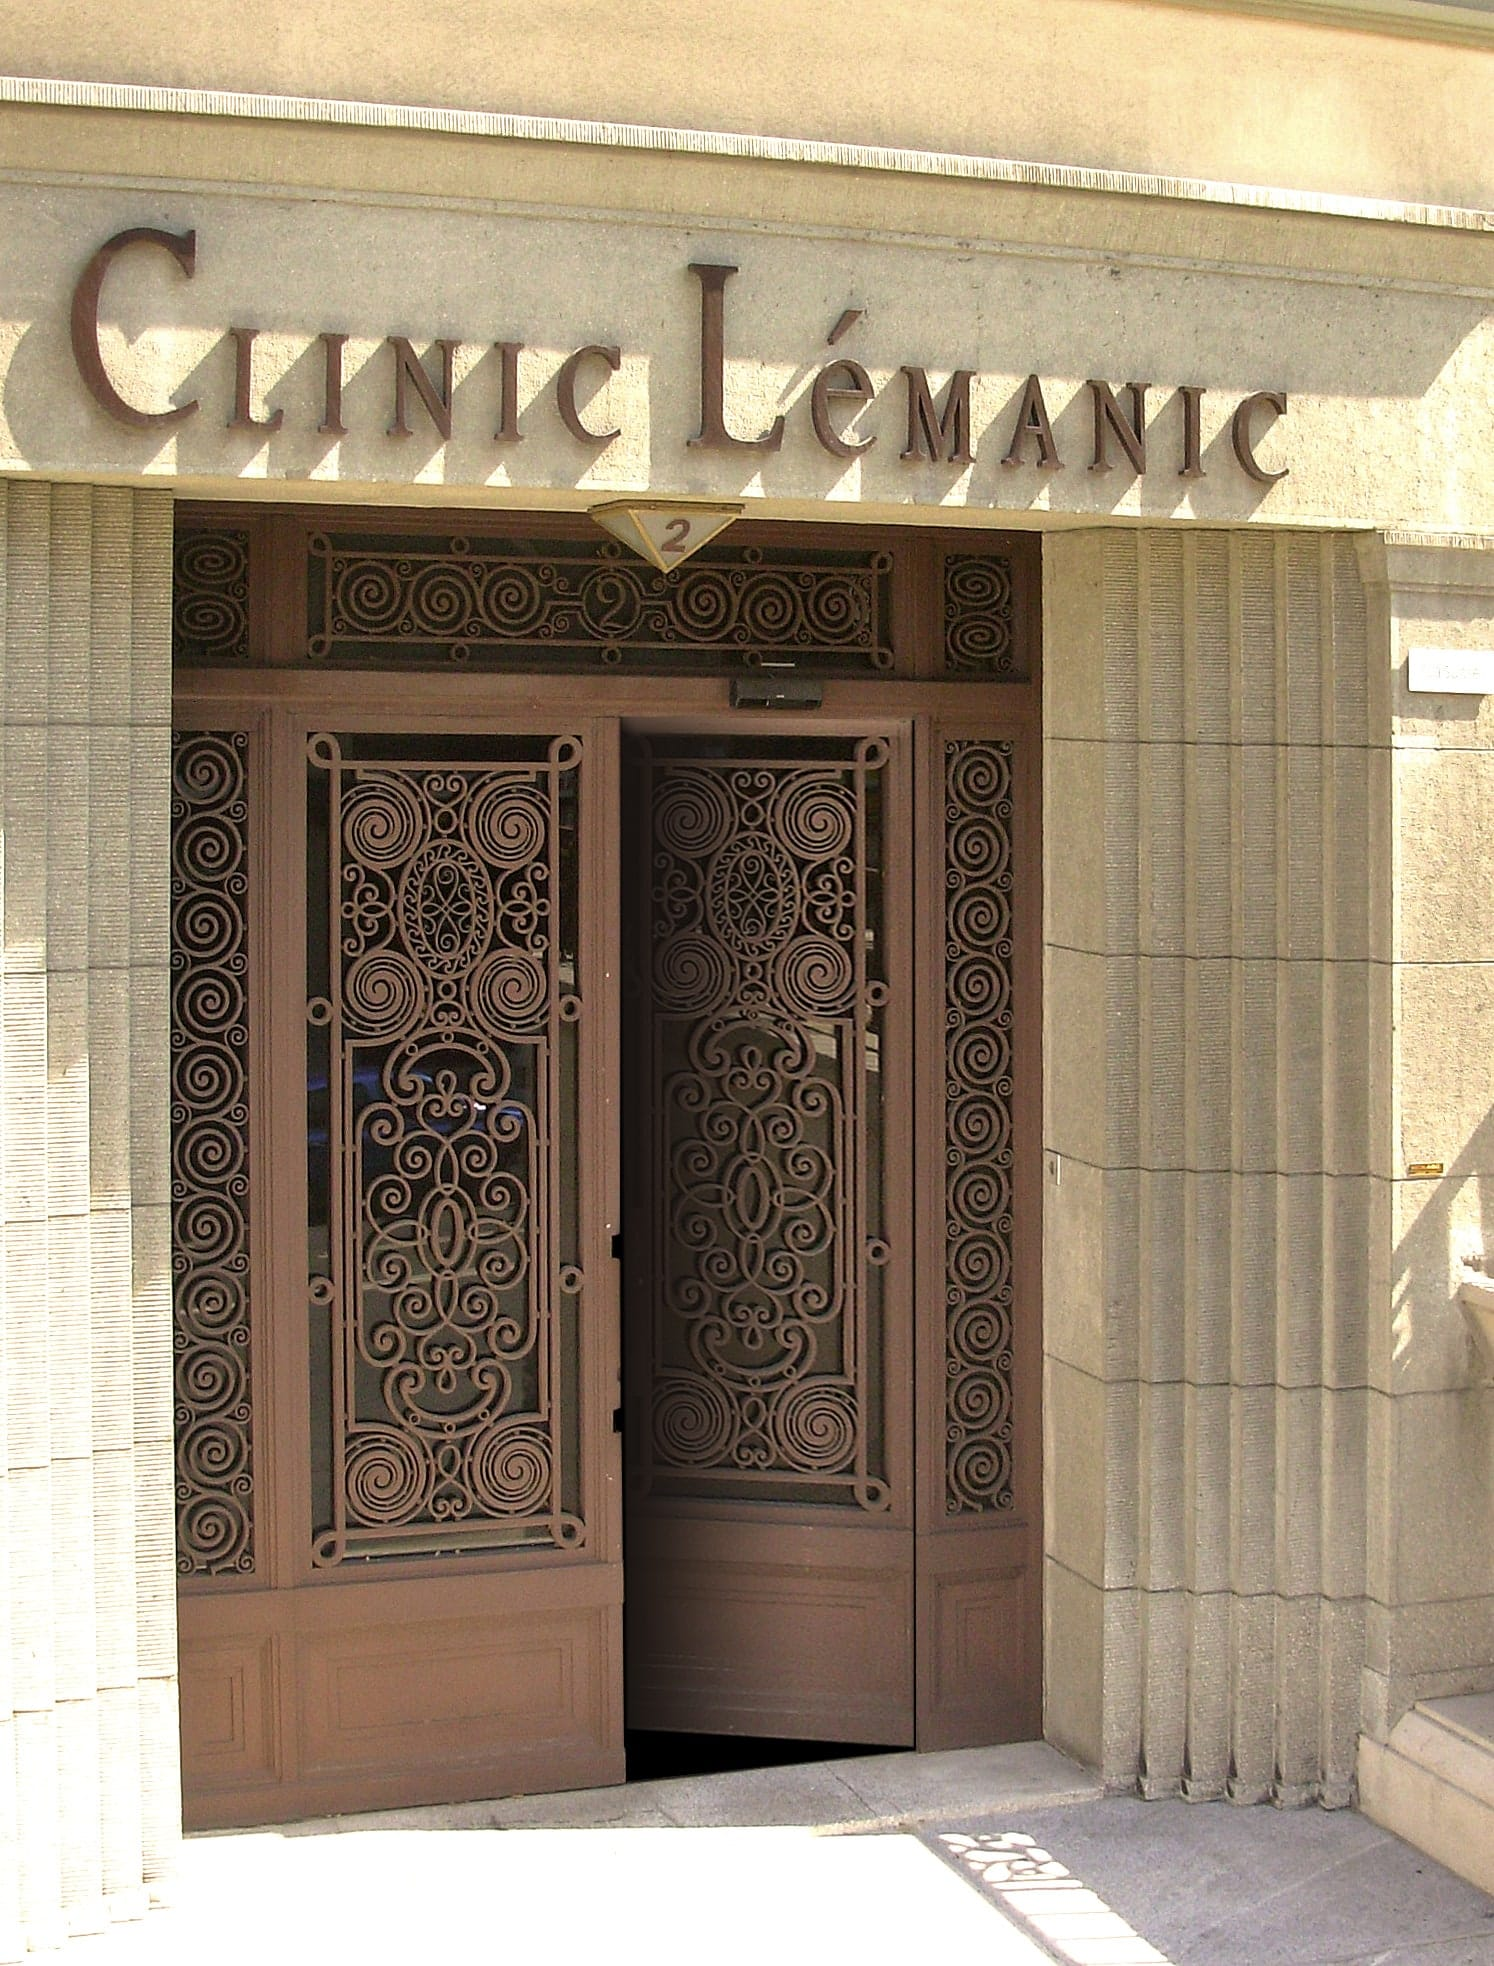 Clinic Lemanic entrance